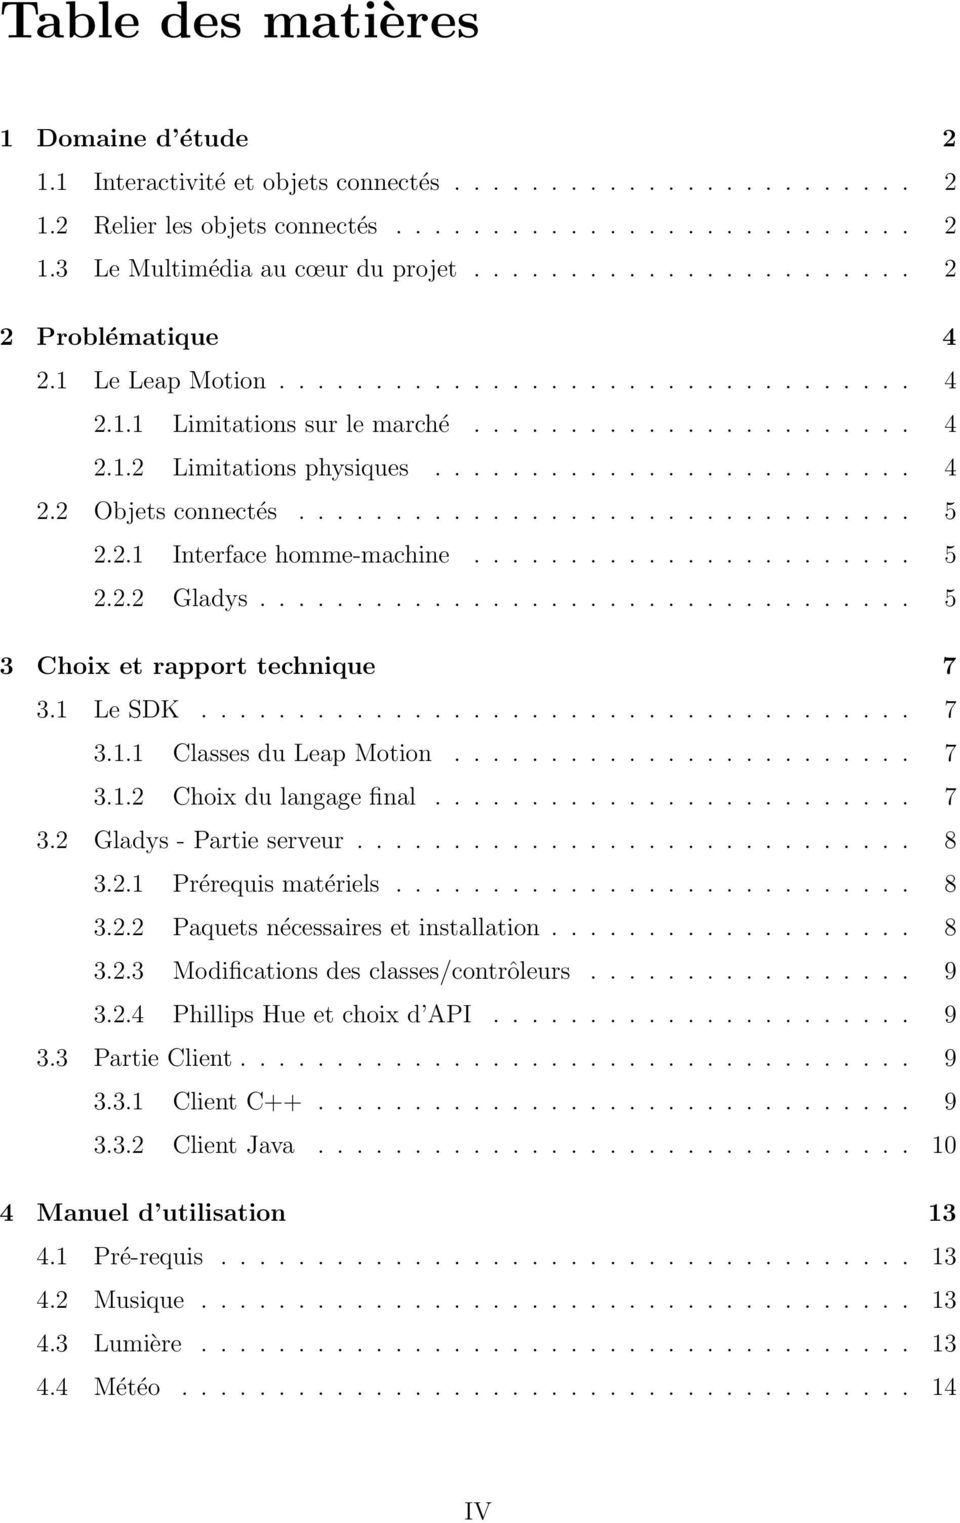 ............................... 5 2.2.1 Interface homme-machine....................... 5 2.2.2 Gladys.................................. 5 3 Choix et rapport technique 7 3.1 Le SDK..................................... 7 3.1.1 Classes du Leap Motion.